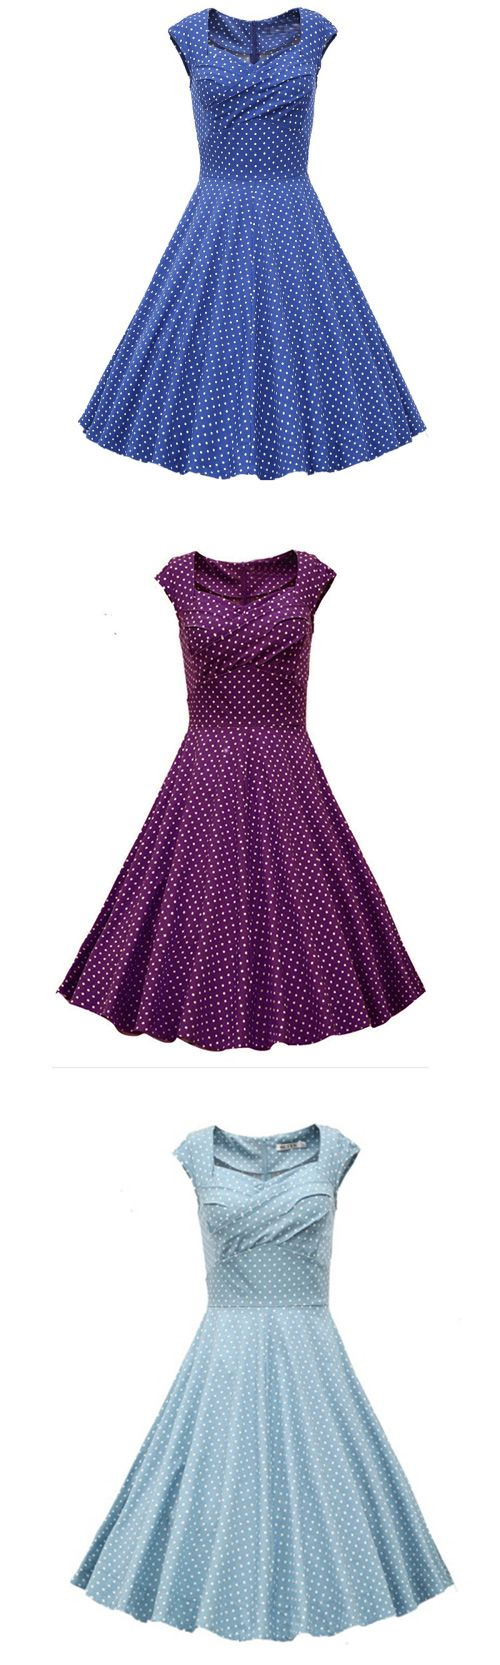 Women's Going out Vintage Cute A Line Polka Dot Sweetheart Knee-length Dress